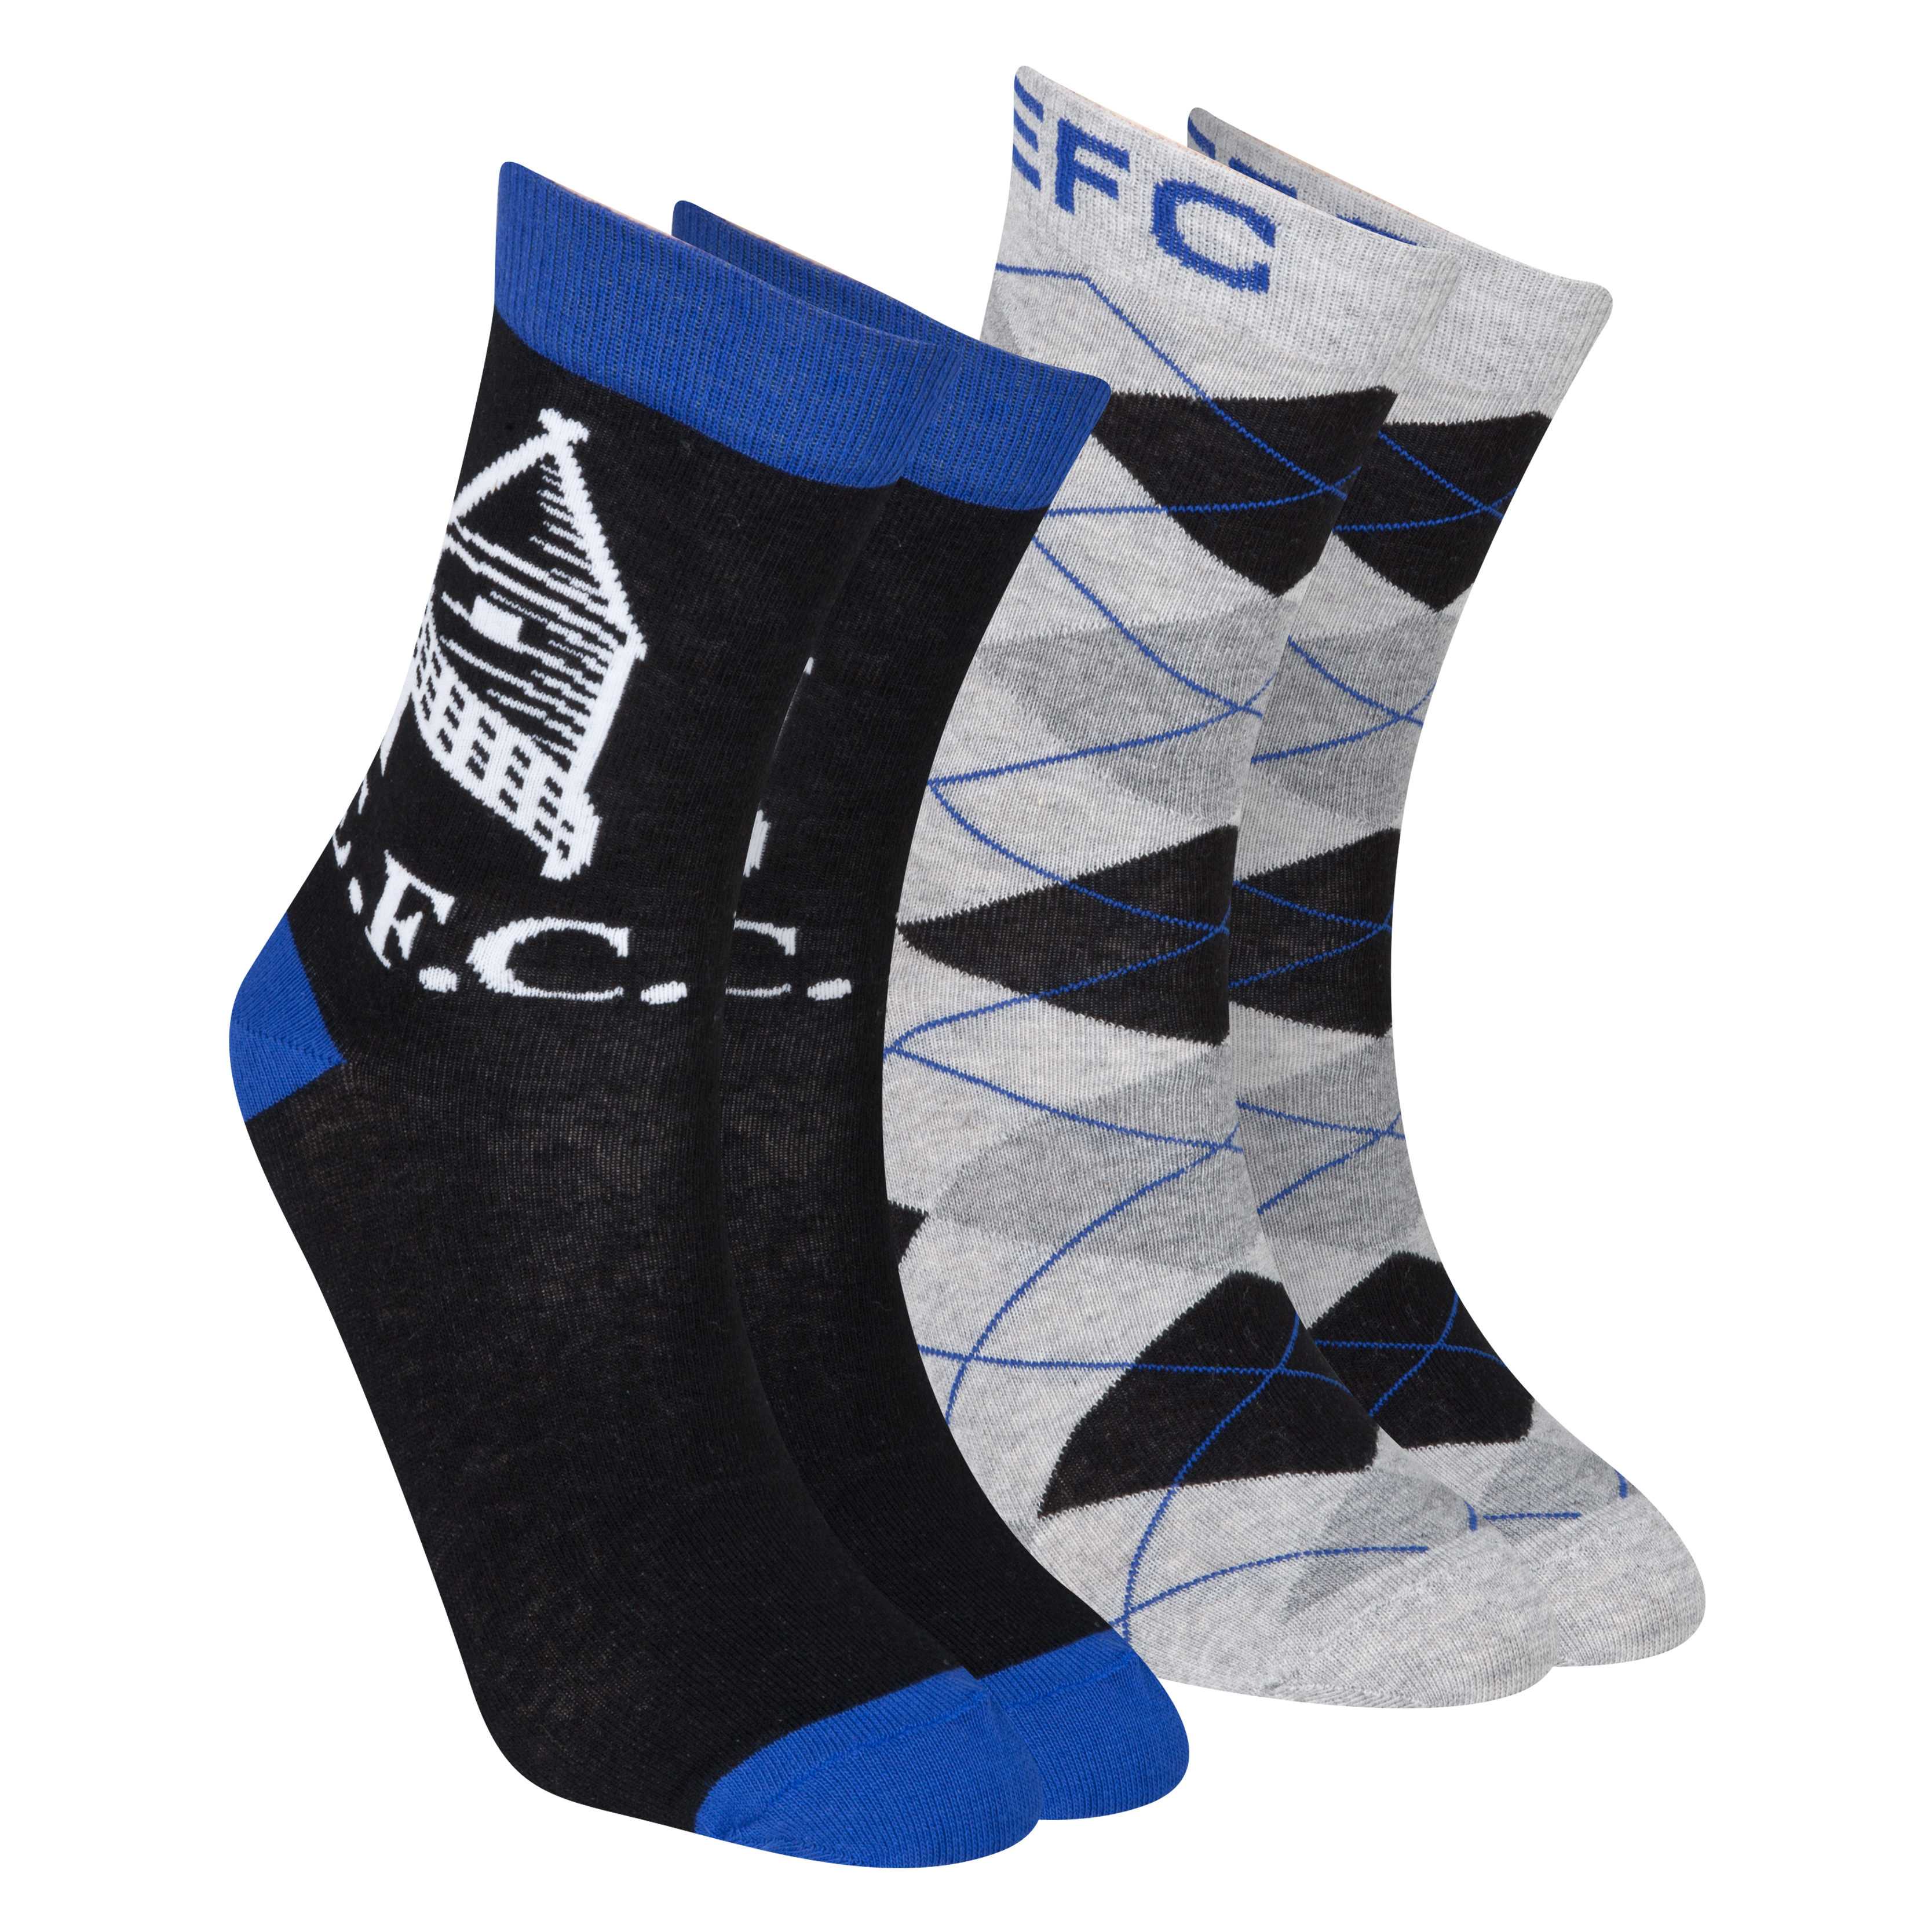 Everton Pack of 2 Dress Sock - Black/Everton Blue/Grey